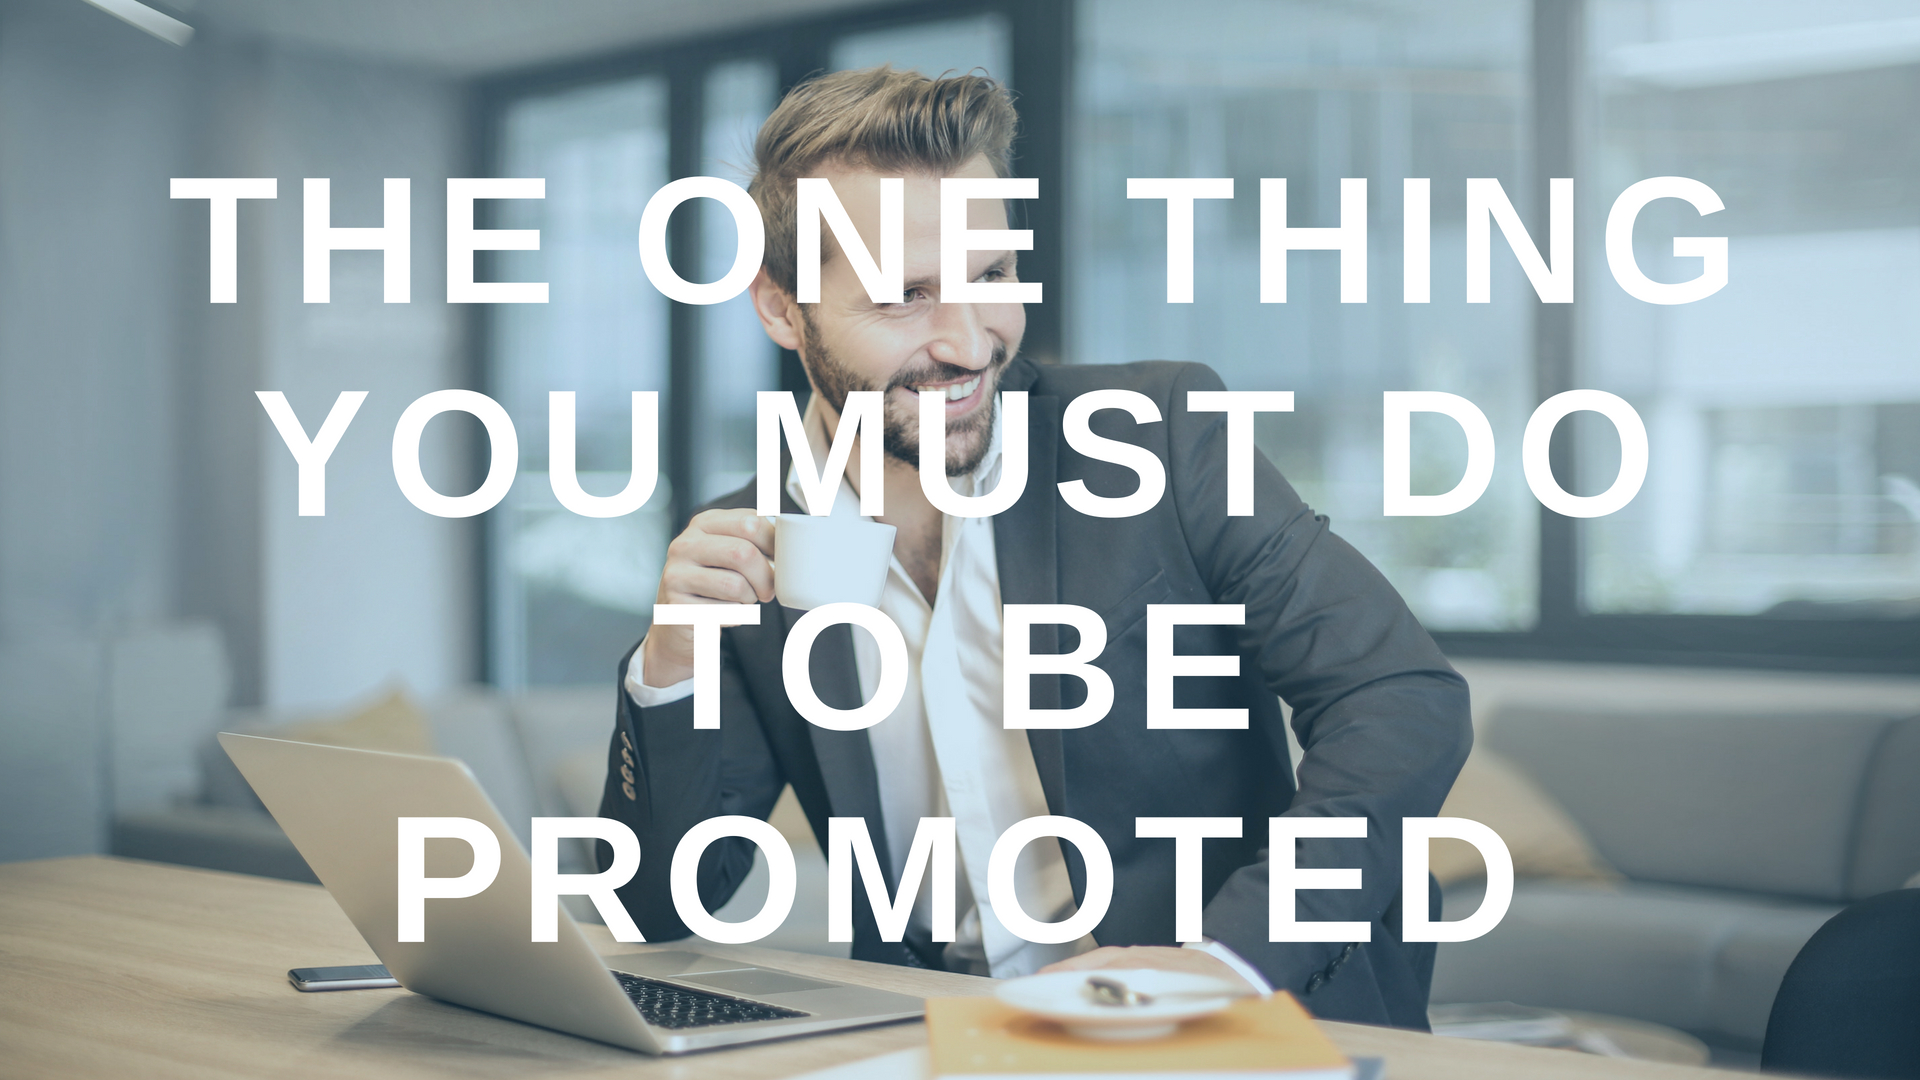 The One Thing You Must do to be Promoted